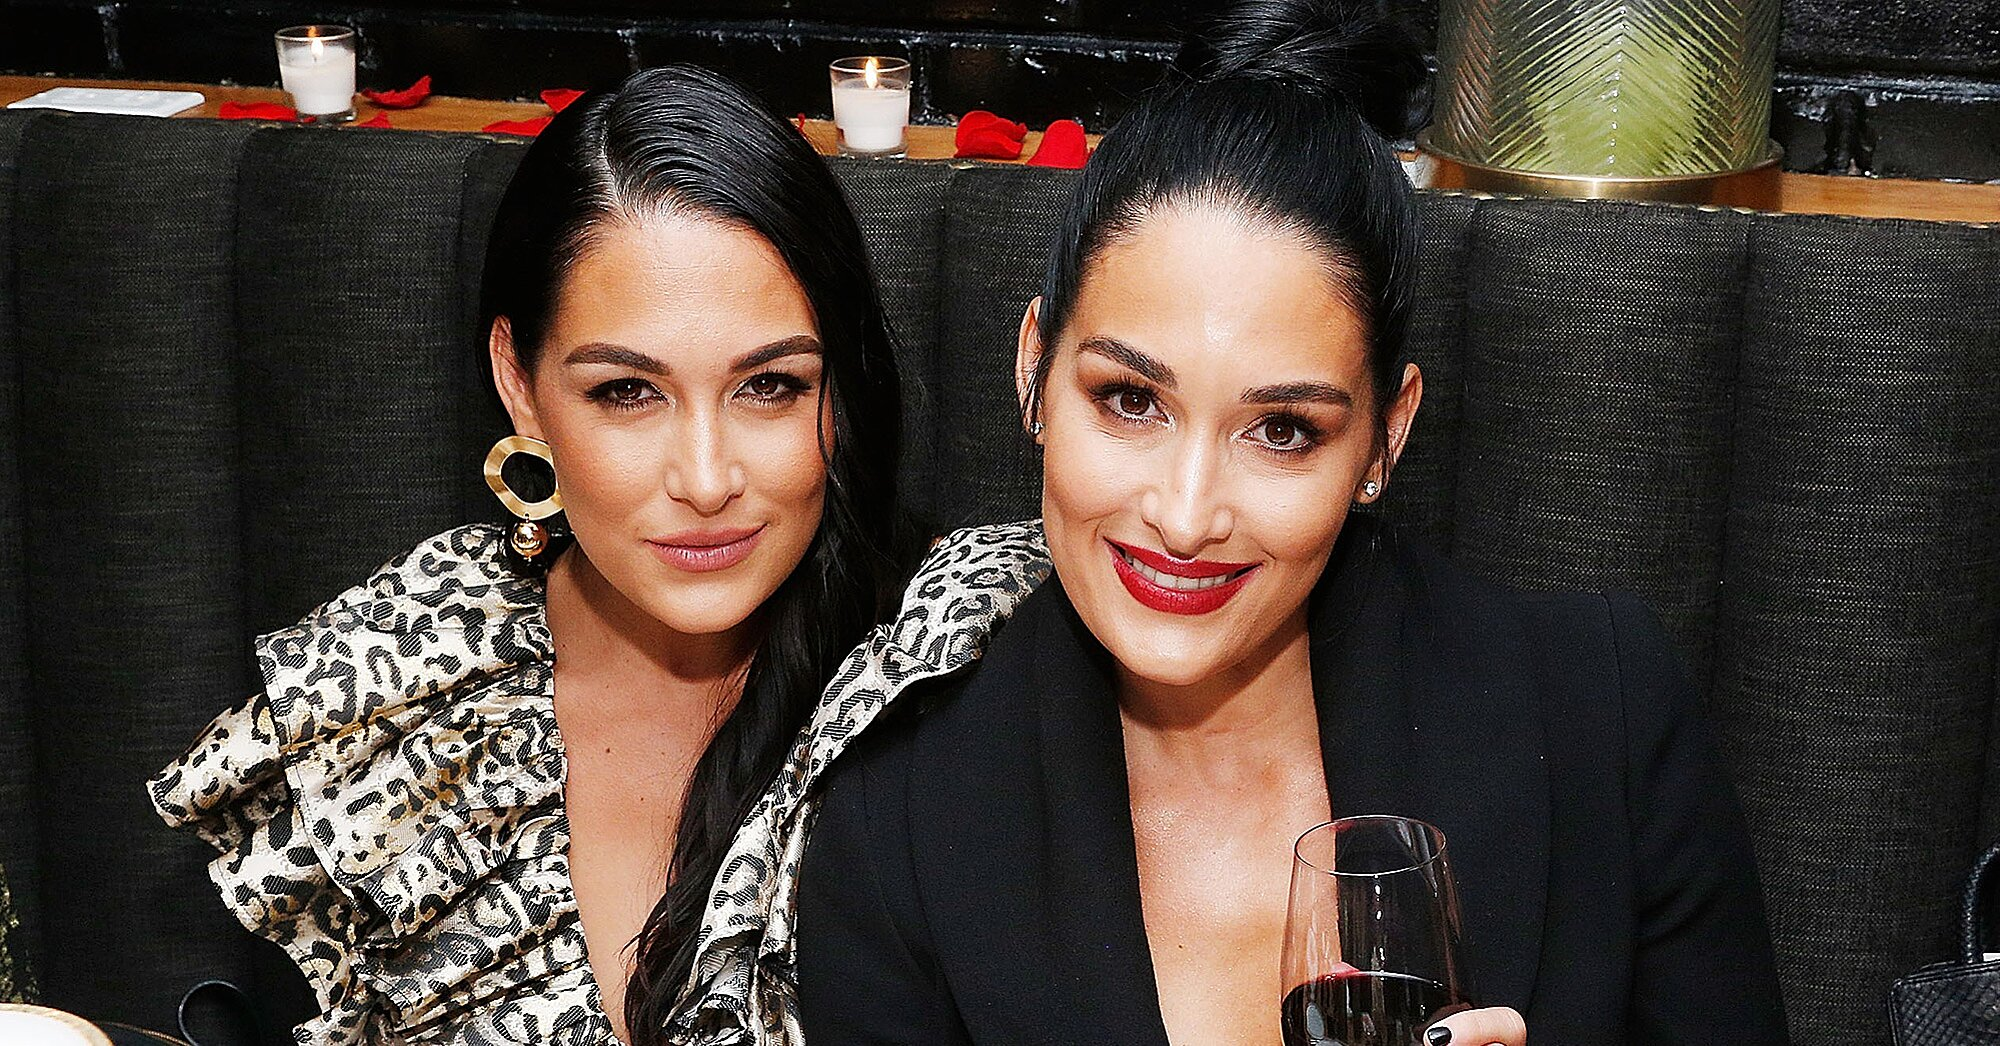 Brie and Nikki Bella Are Moving! Sisters Open Up About the 'Twin Decision' to Settle in Napa Valley